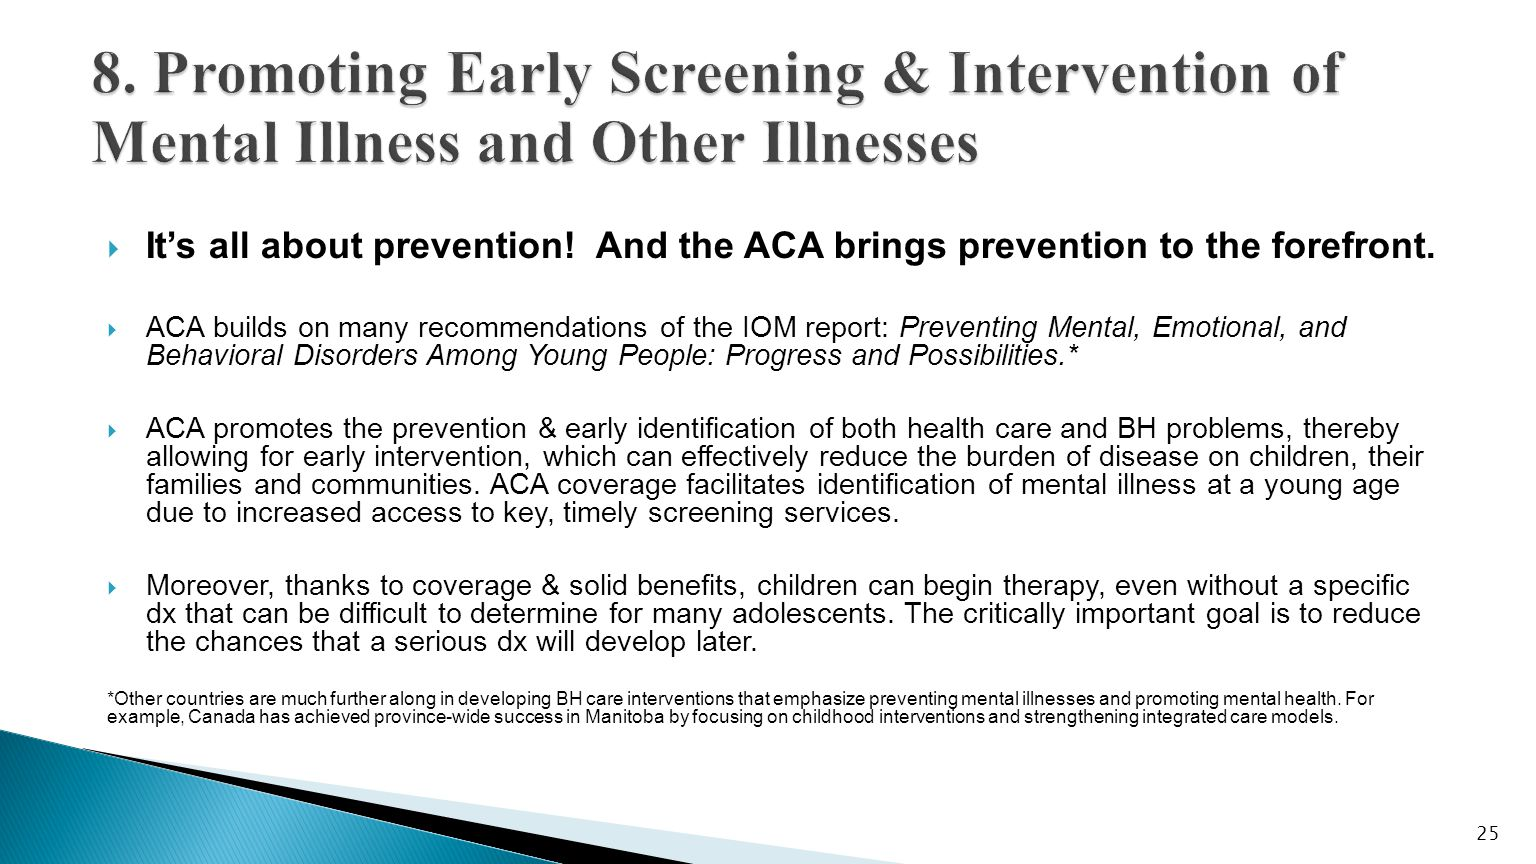  It's all about prevention. And the ACA brings prevention to the forefront.